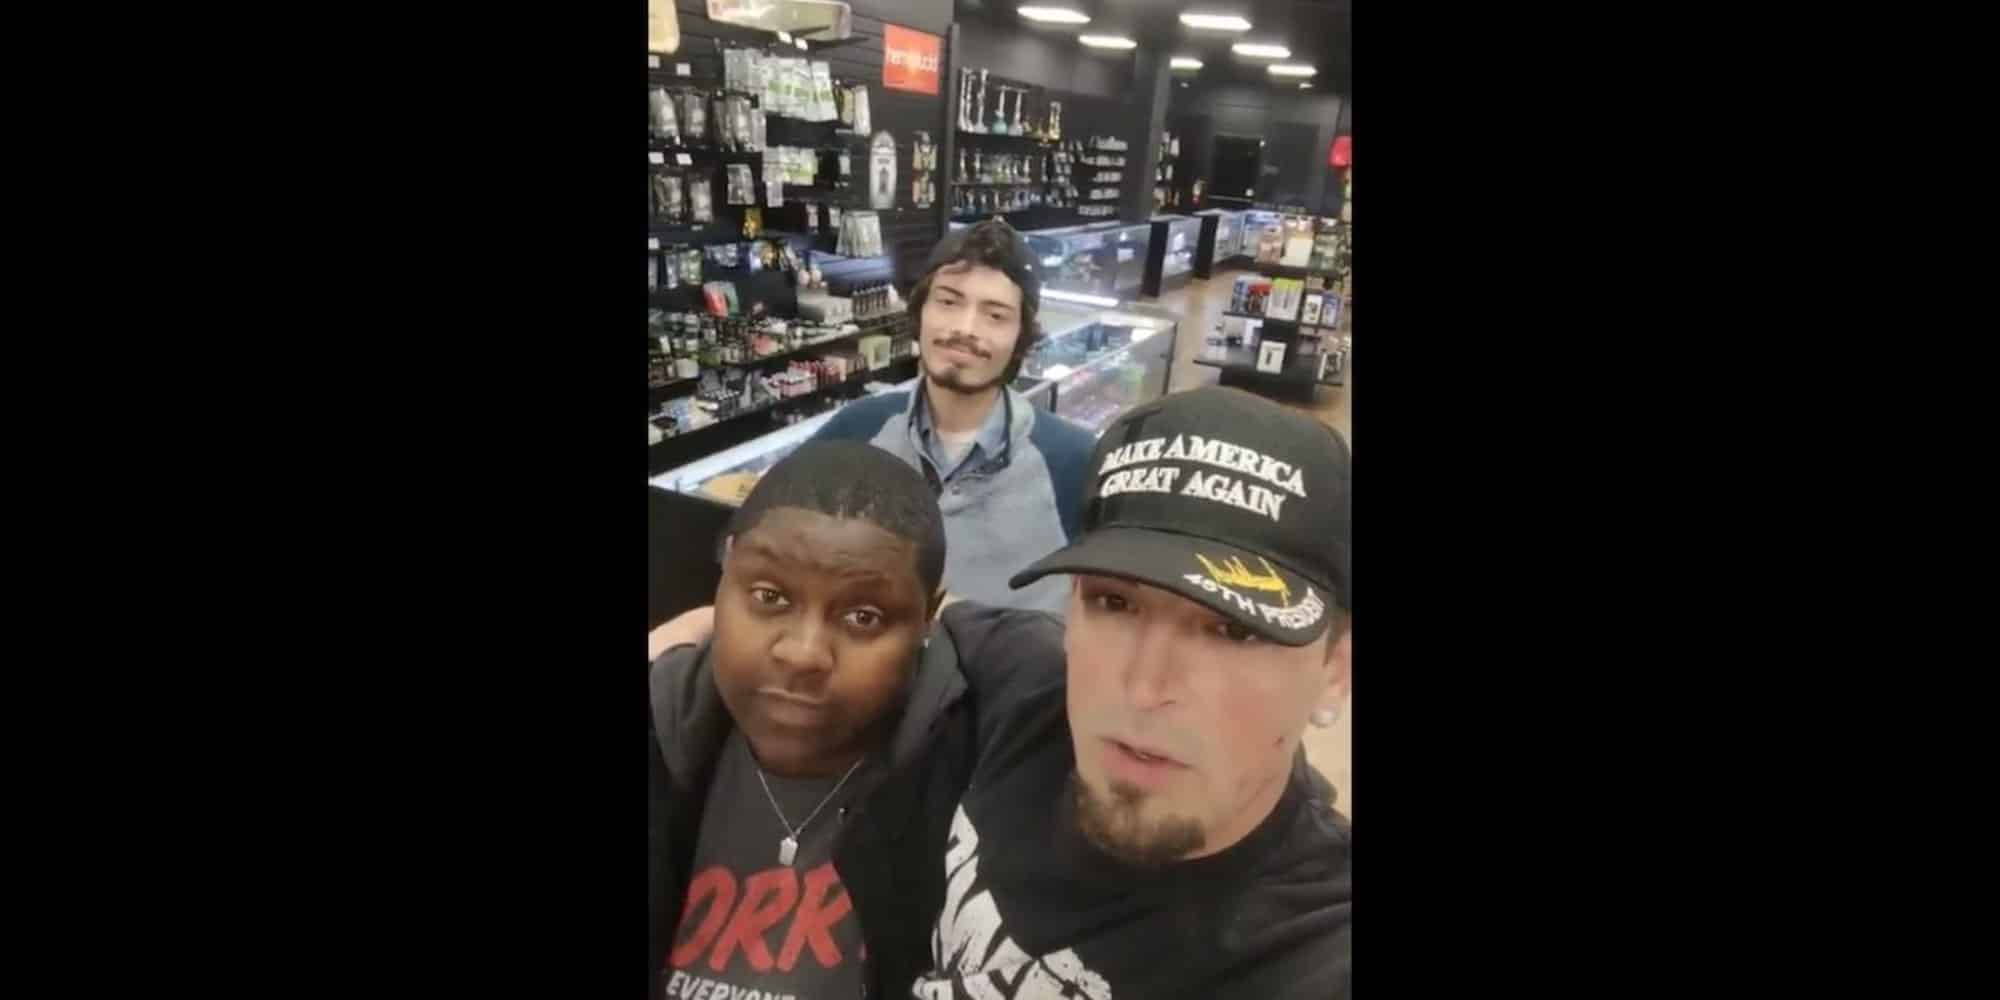 Pro-Trump customer returns to store and films Facebook video